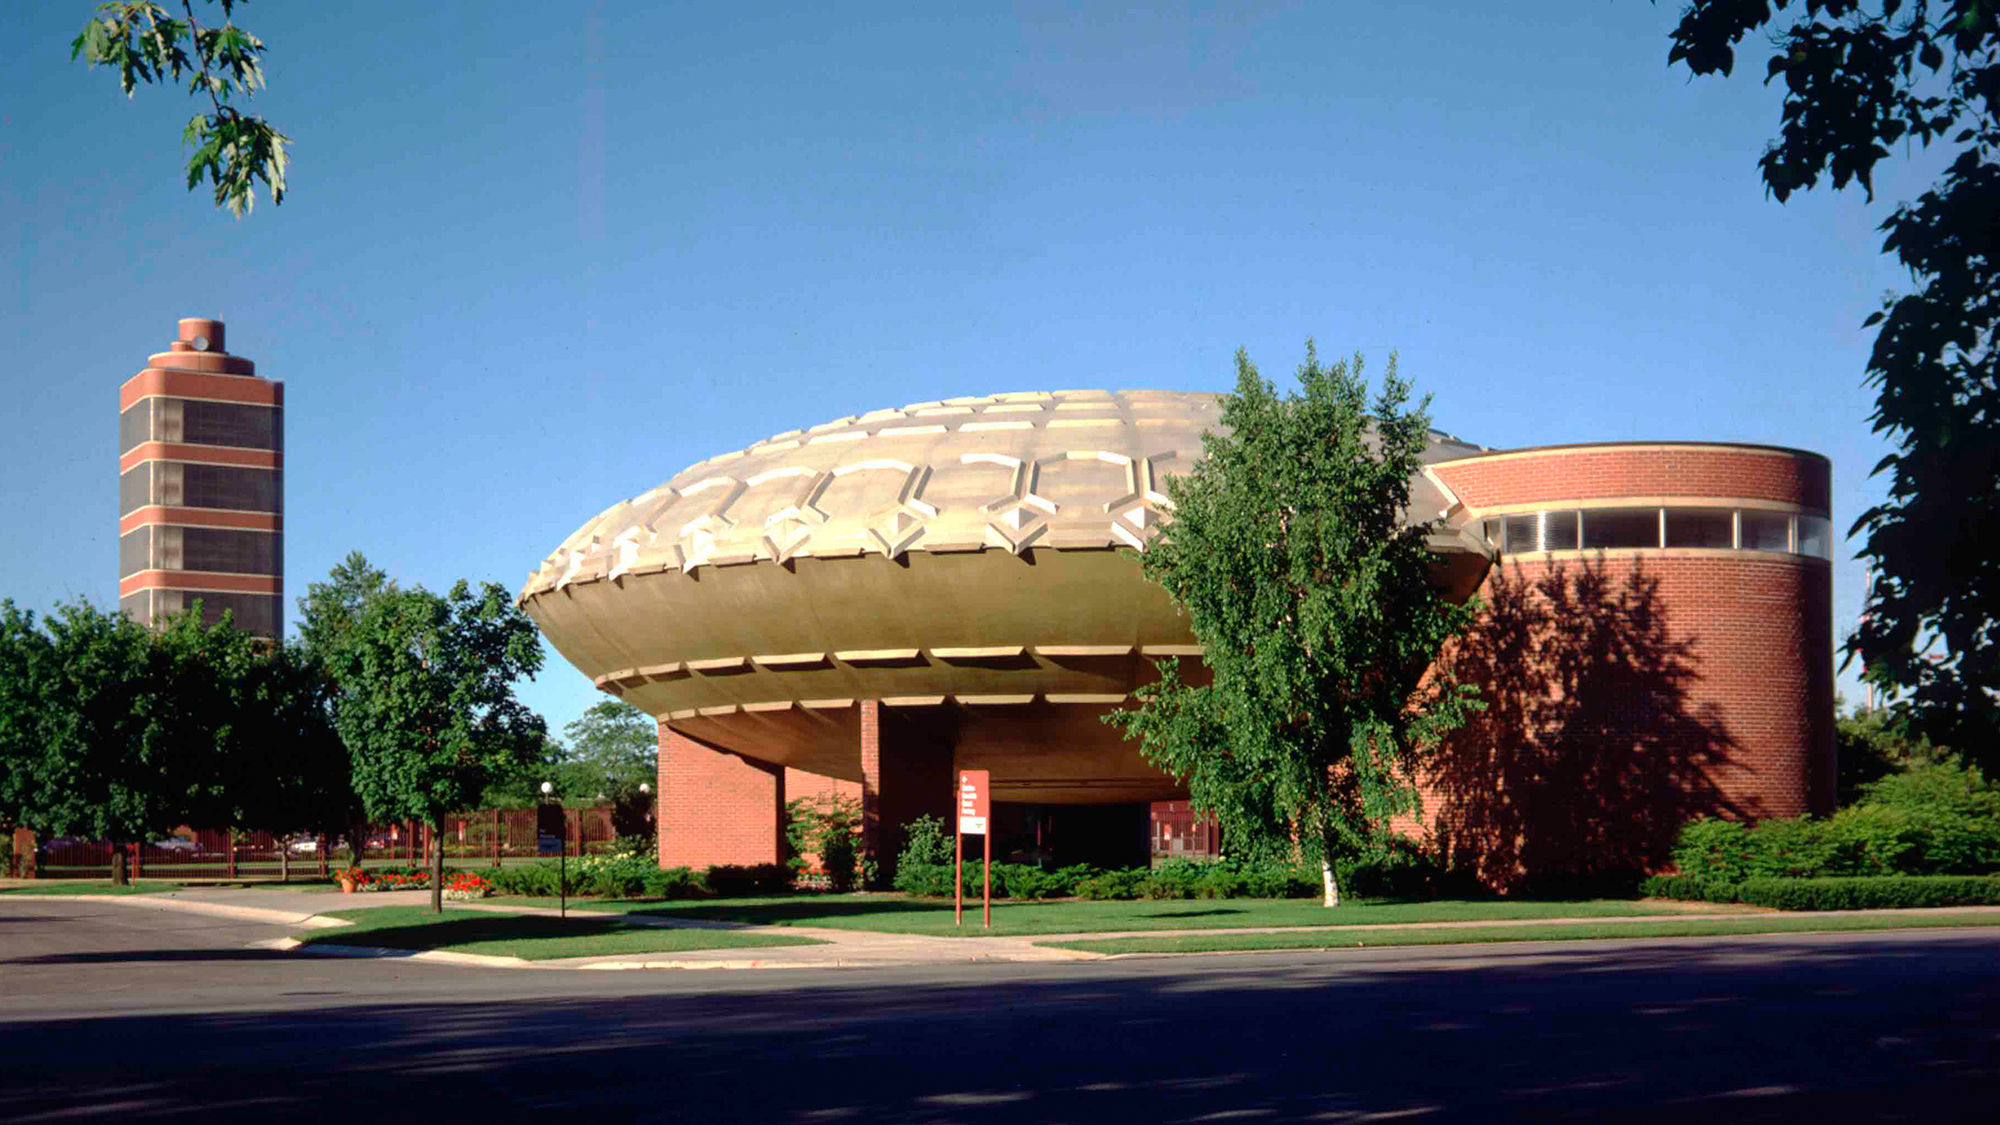 The Golden Rondelle Theatre at SC Johnson corporate headquarters